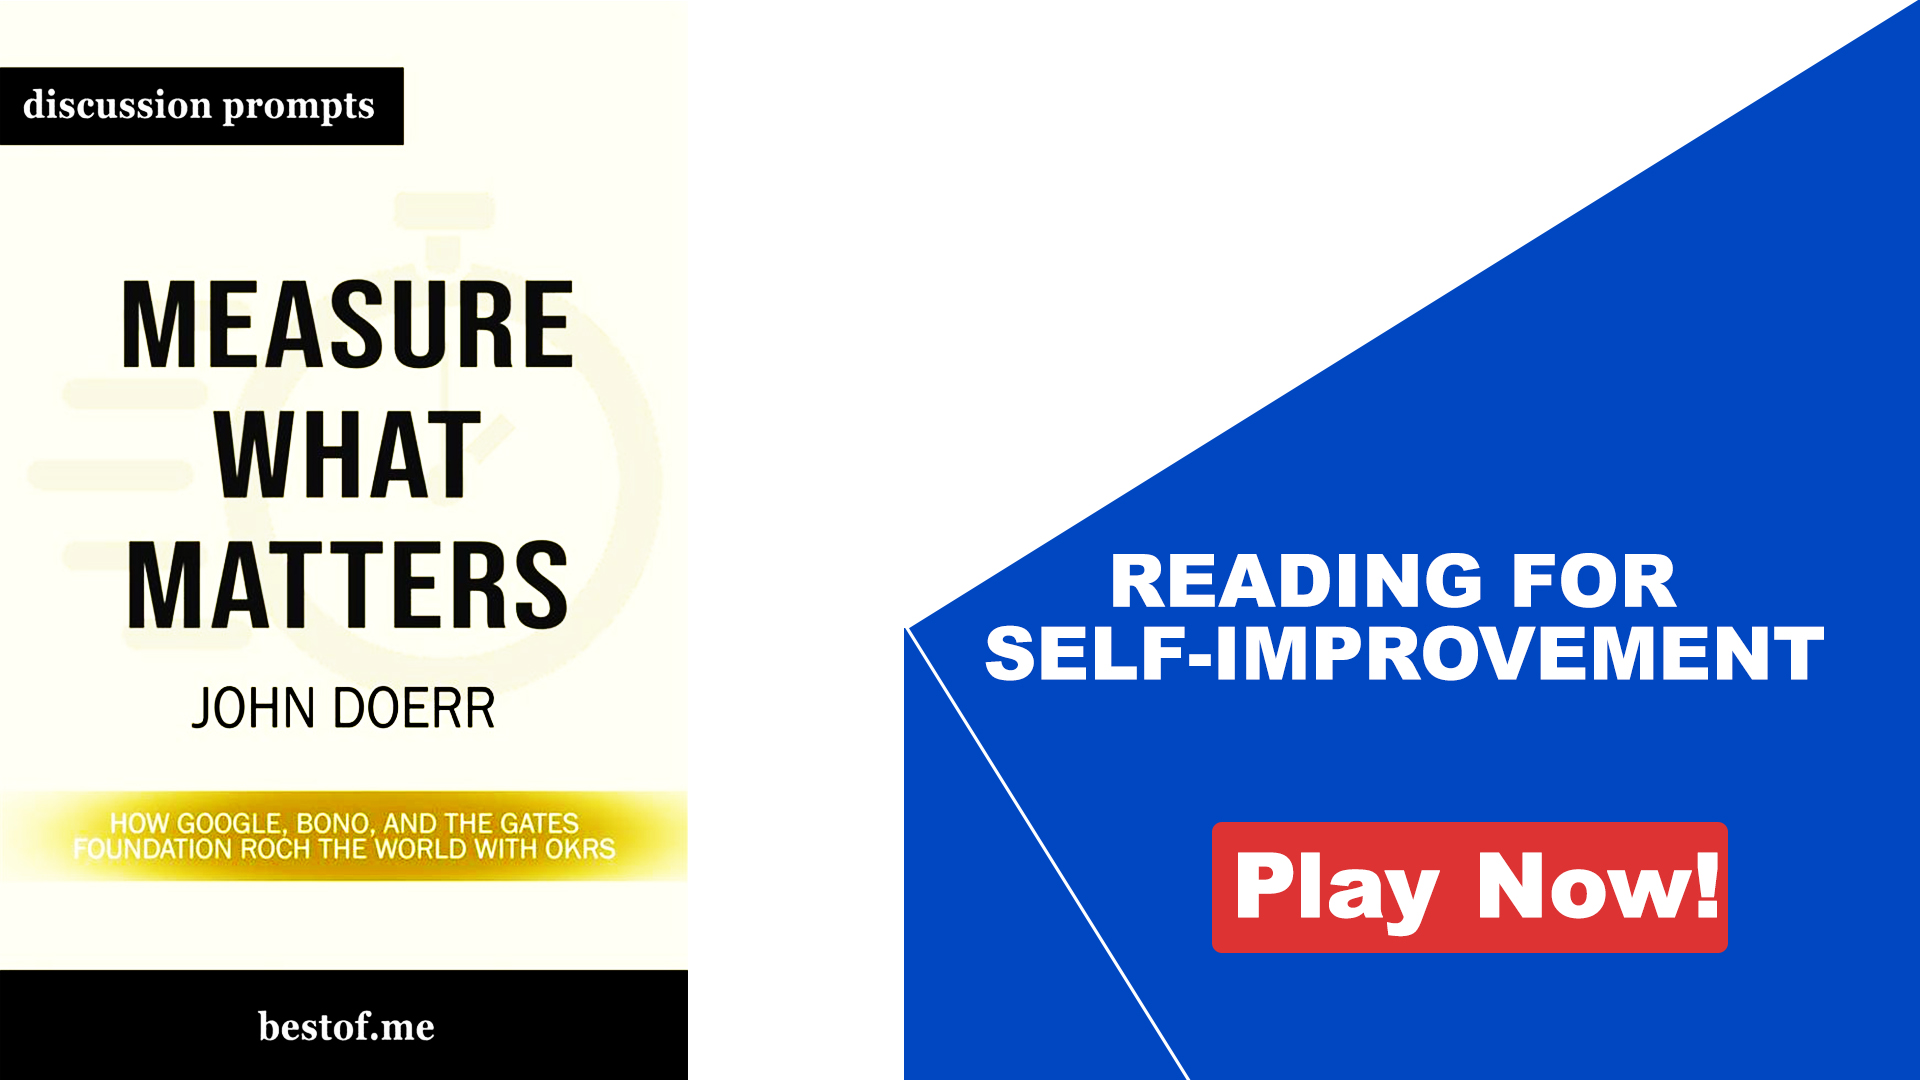 Reading For Self-Improvement - Measure What Matters by John Doerr